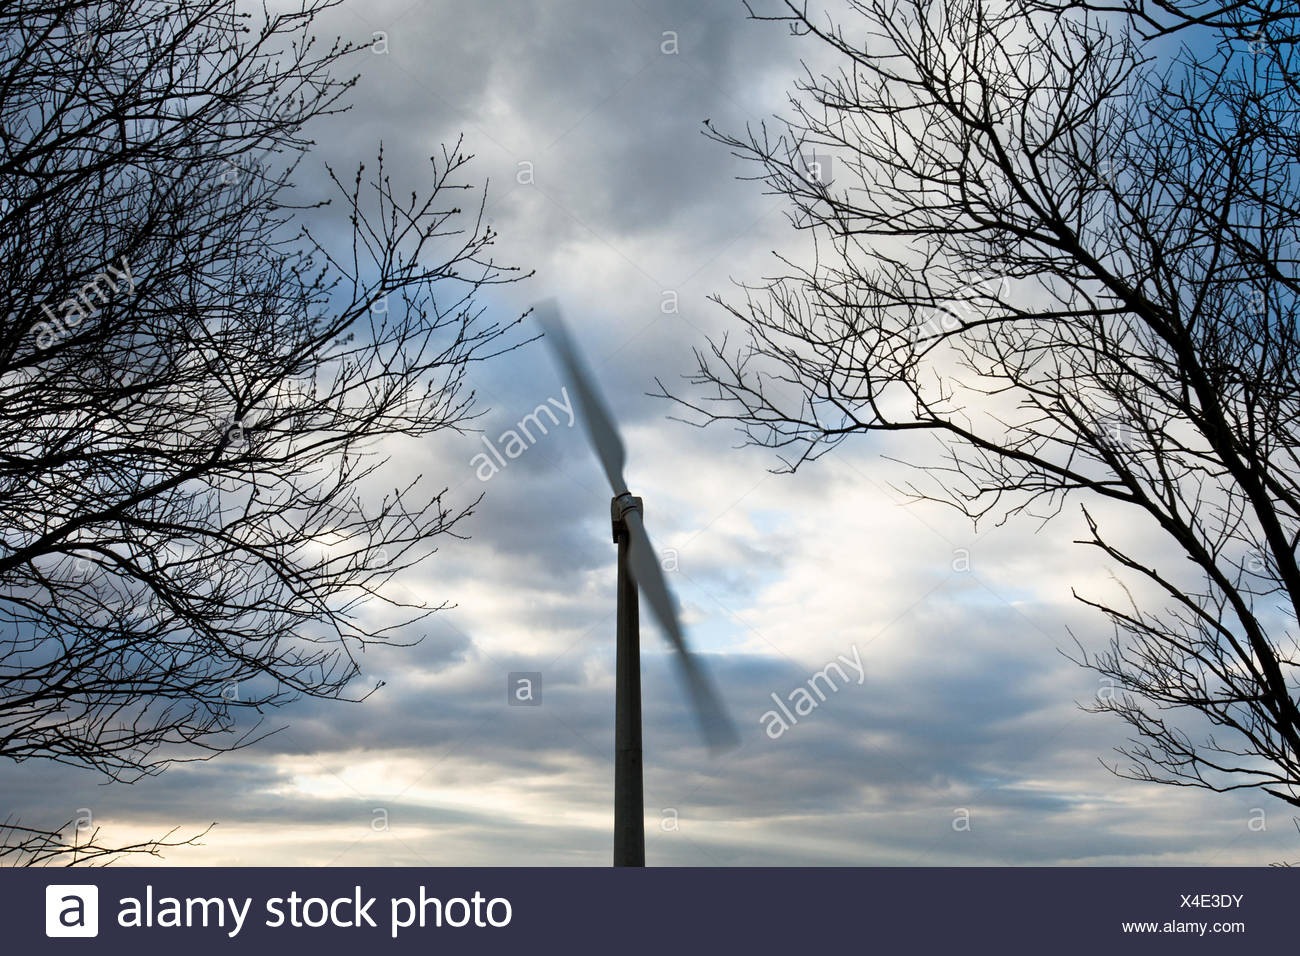 Two bladed wind turbine framed by trees turns in the wind near Delabole, Cornwall in the United Kingdom. - Stock Image